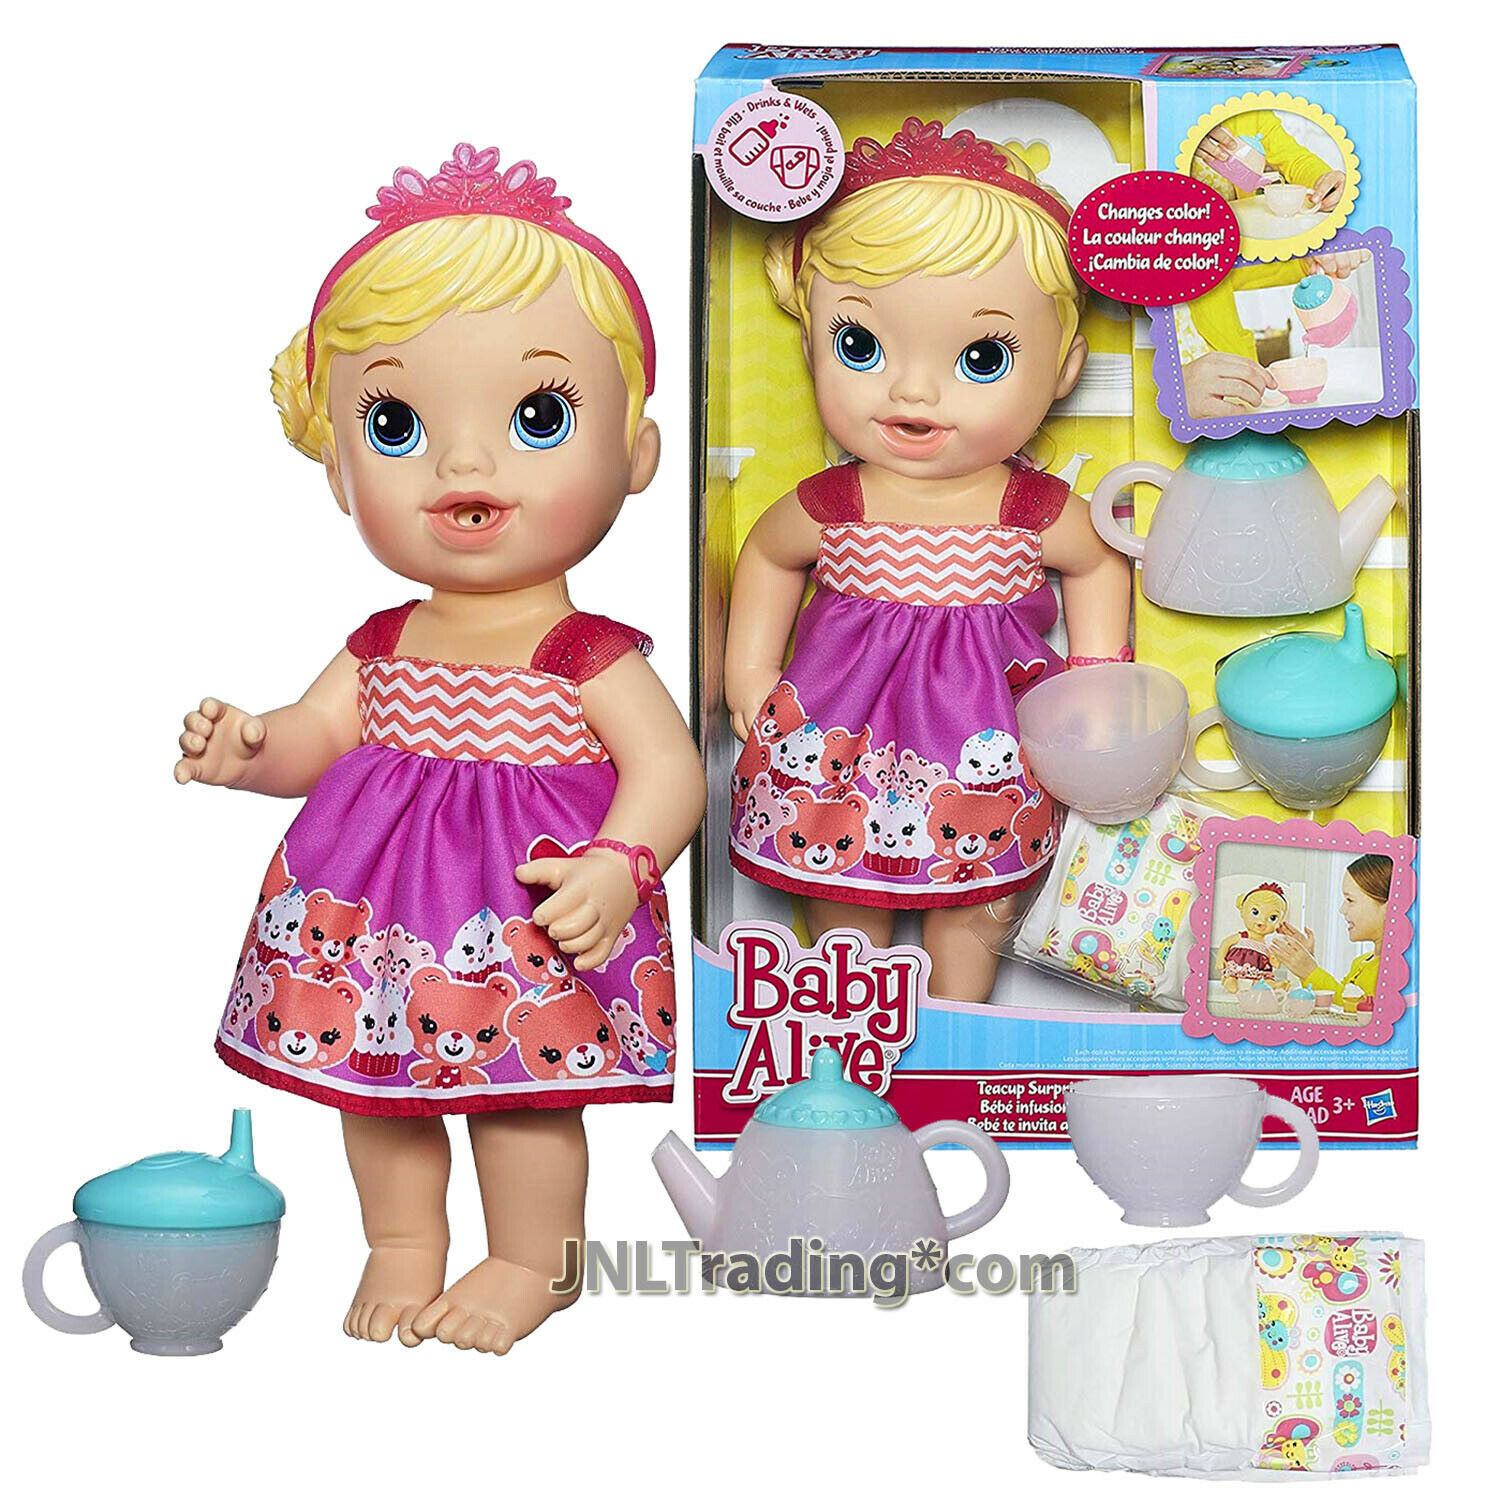 Year 2014 Baby Alive 12 Inch Doll Set - Caucasian TEACUP SURPRISE BABY